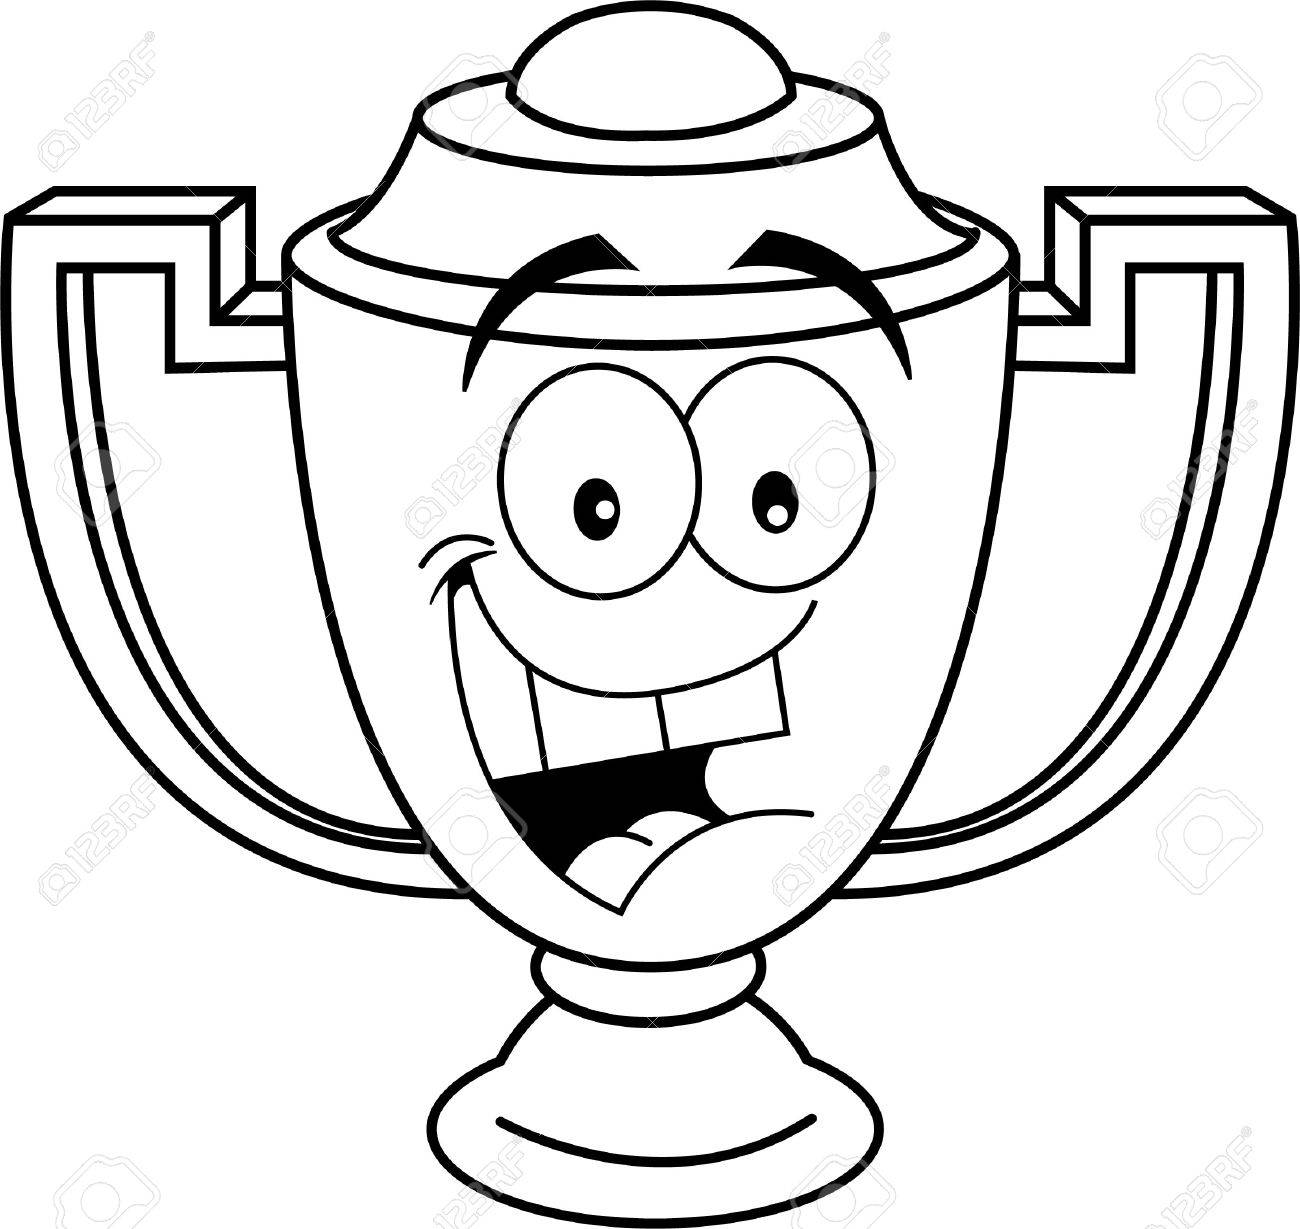 Black And White Illustration Of A Smiling Trophy Cup Stock Vector